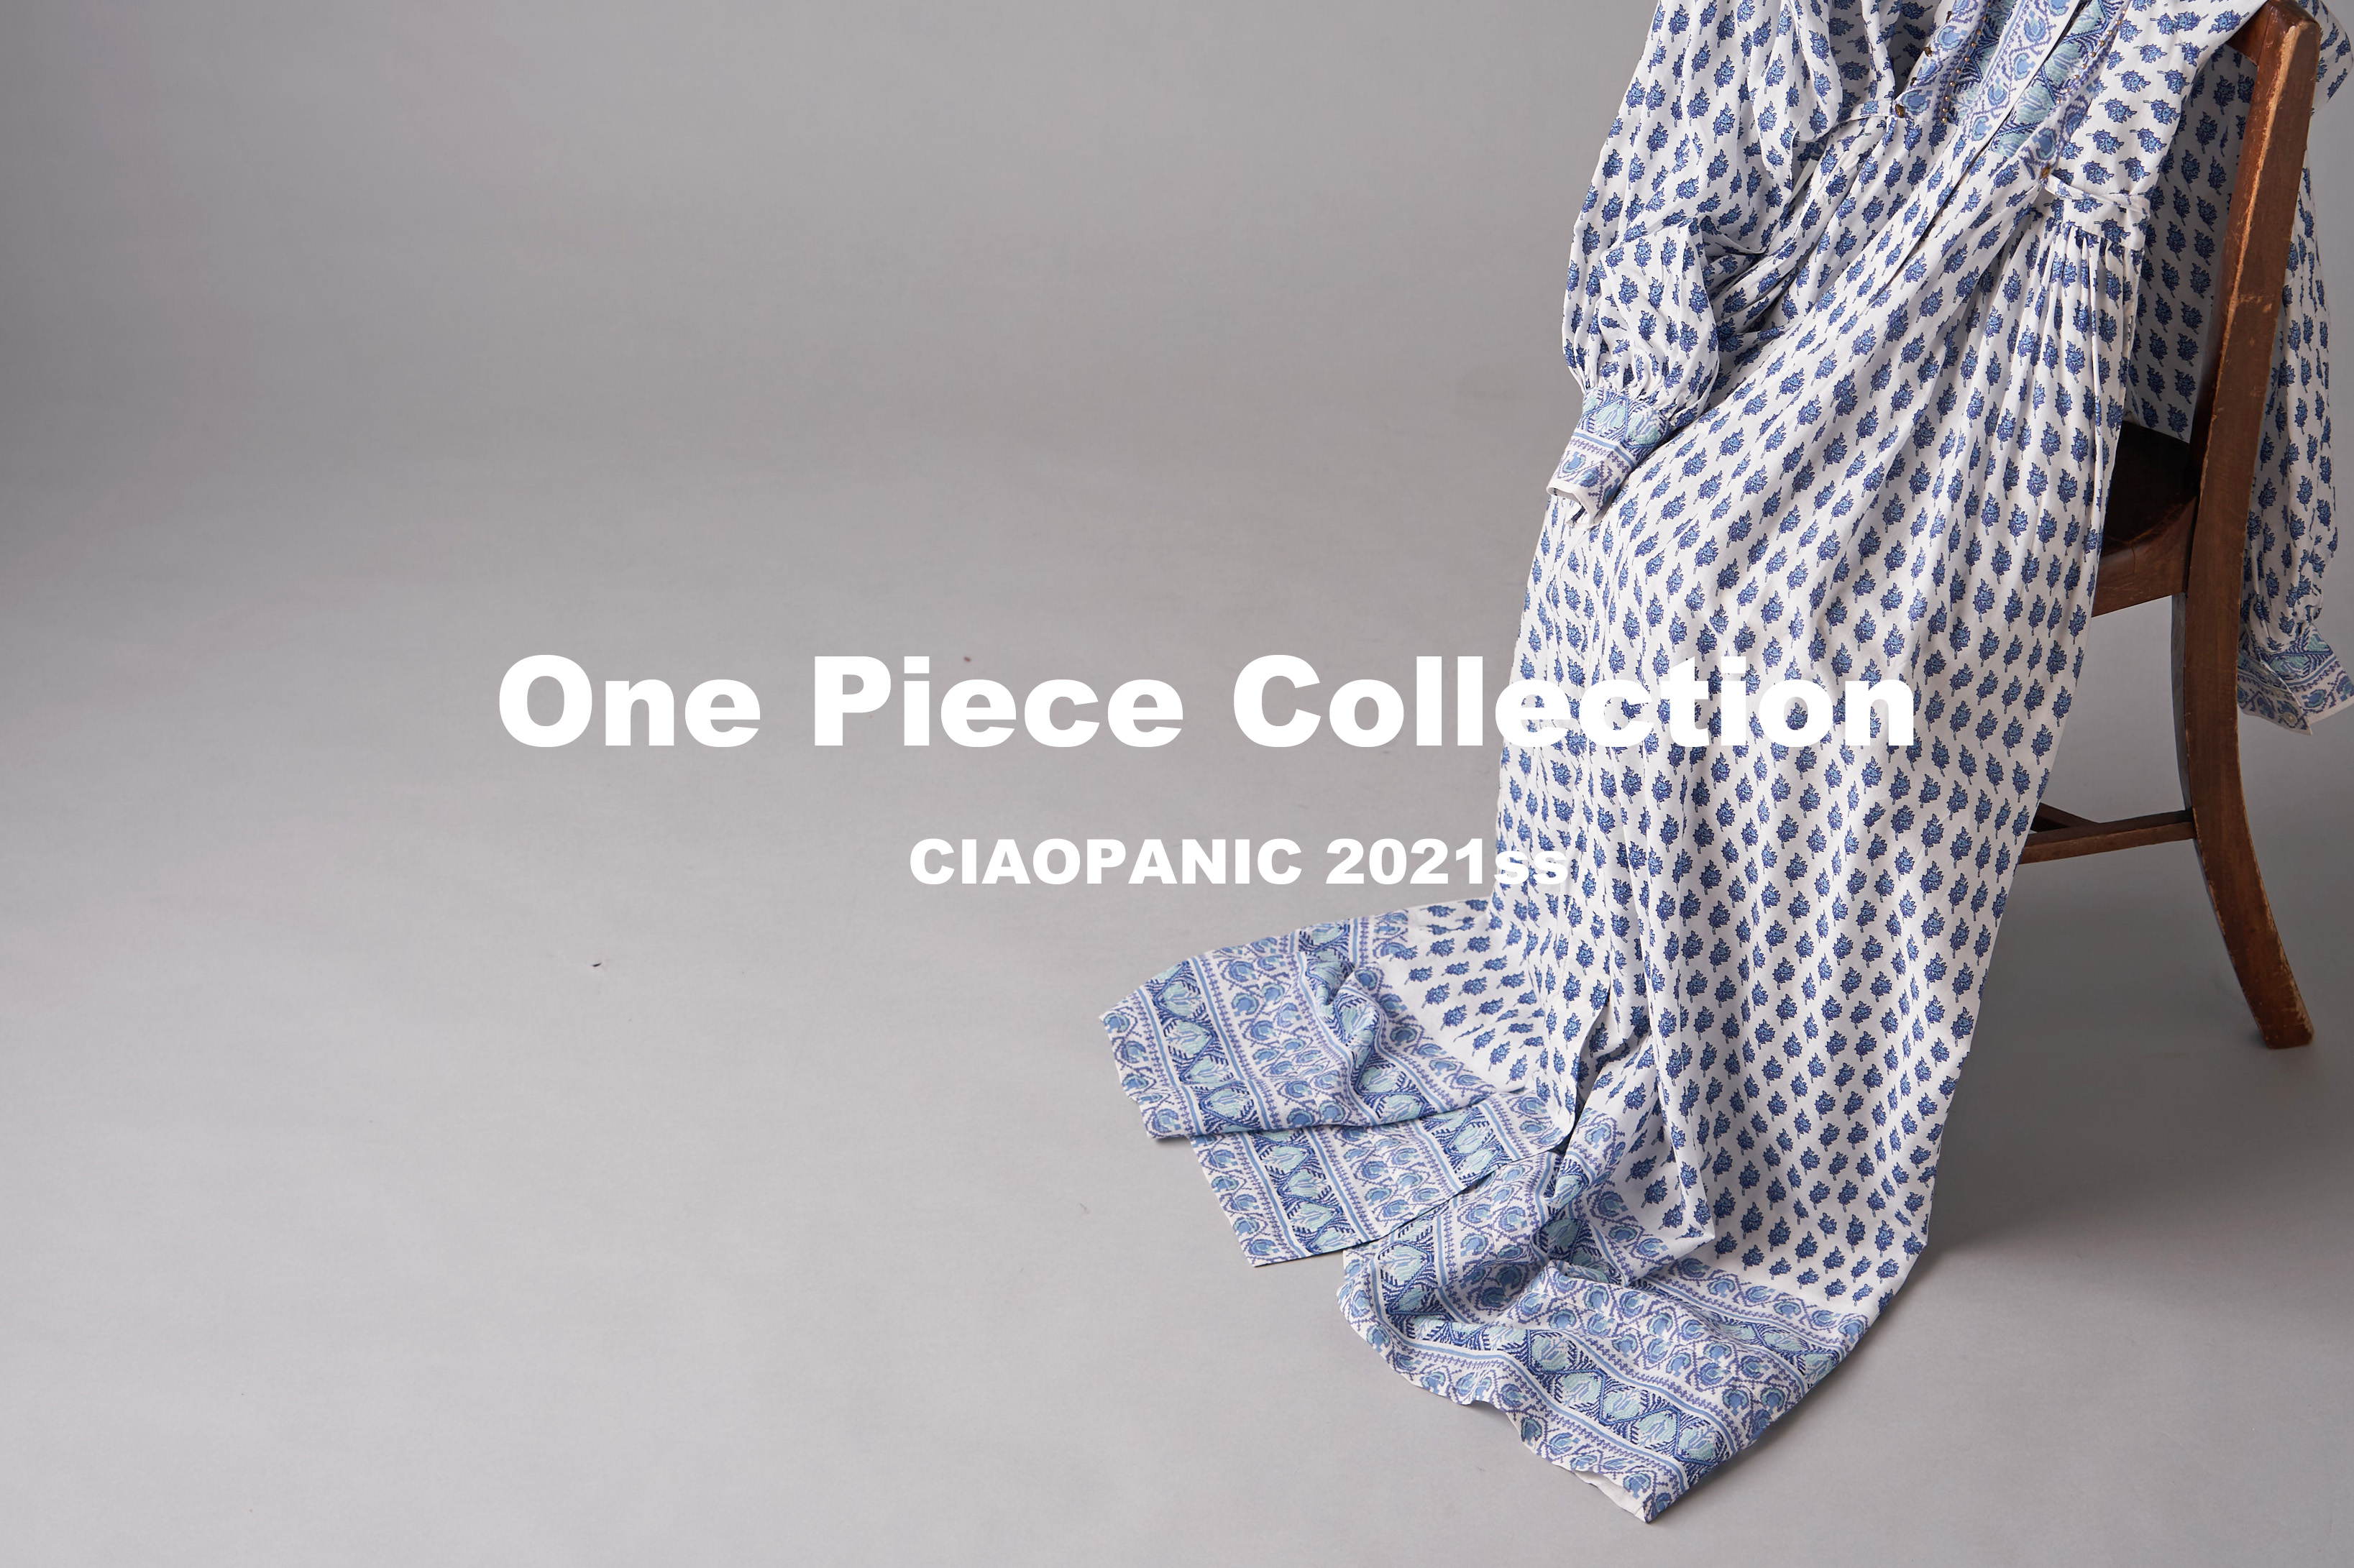 CIAOPANIC One Piece Collection